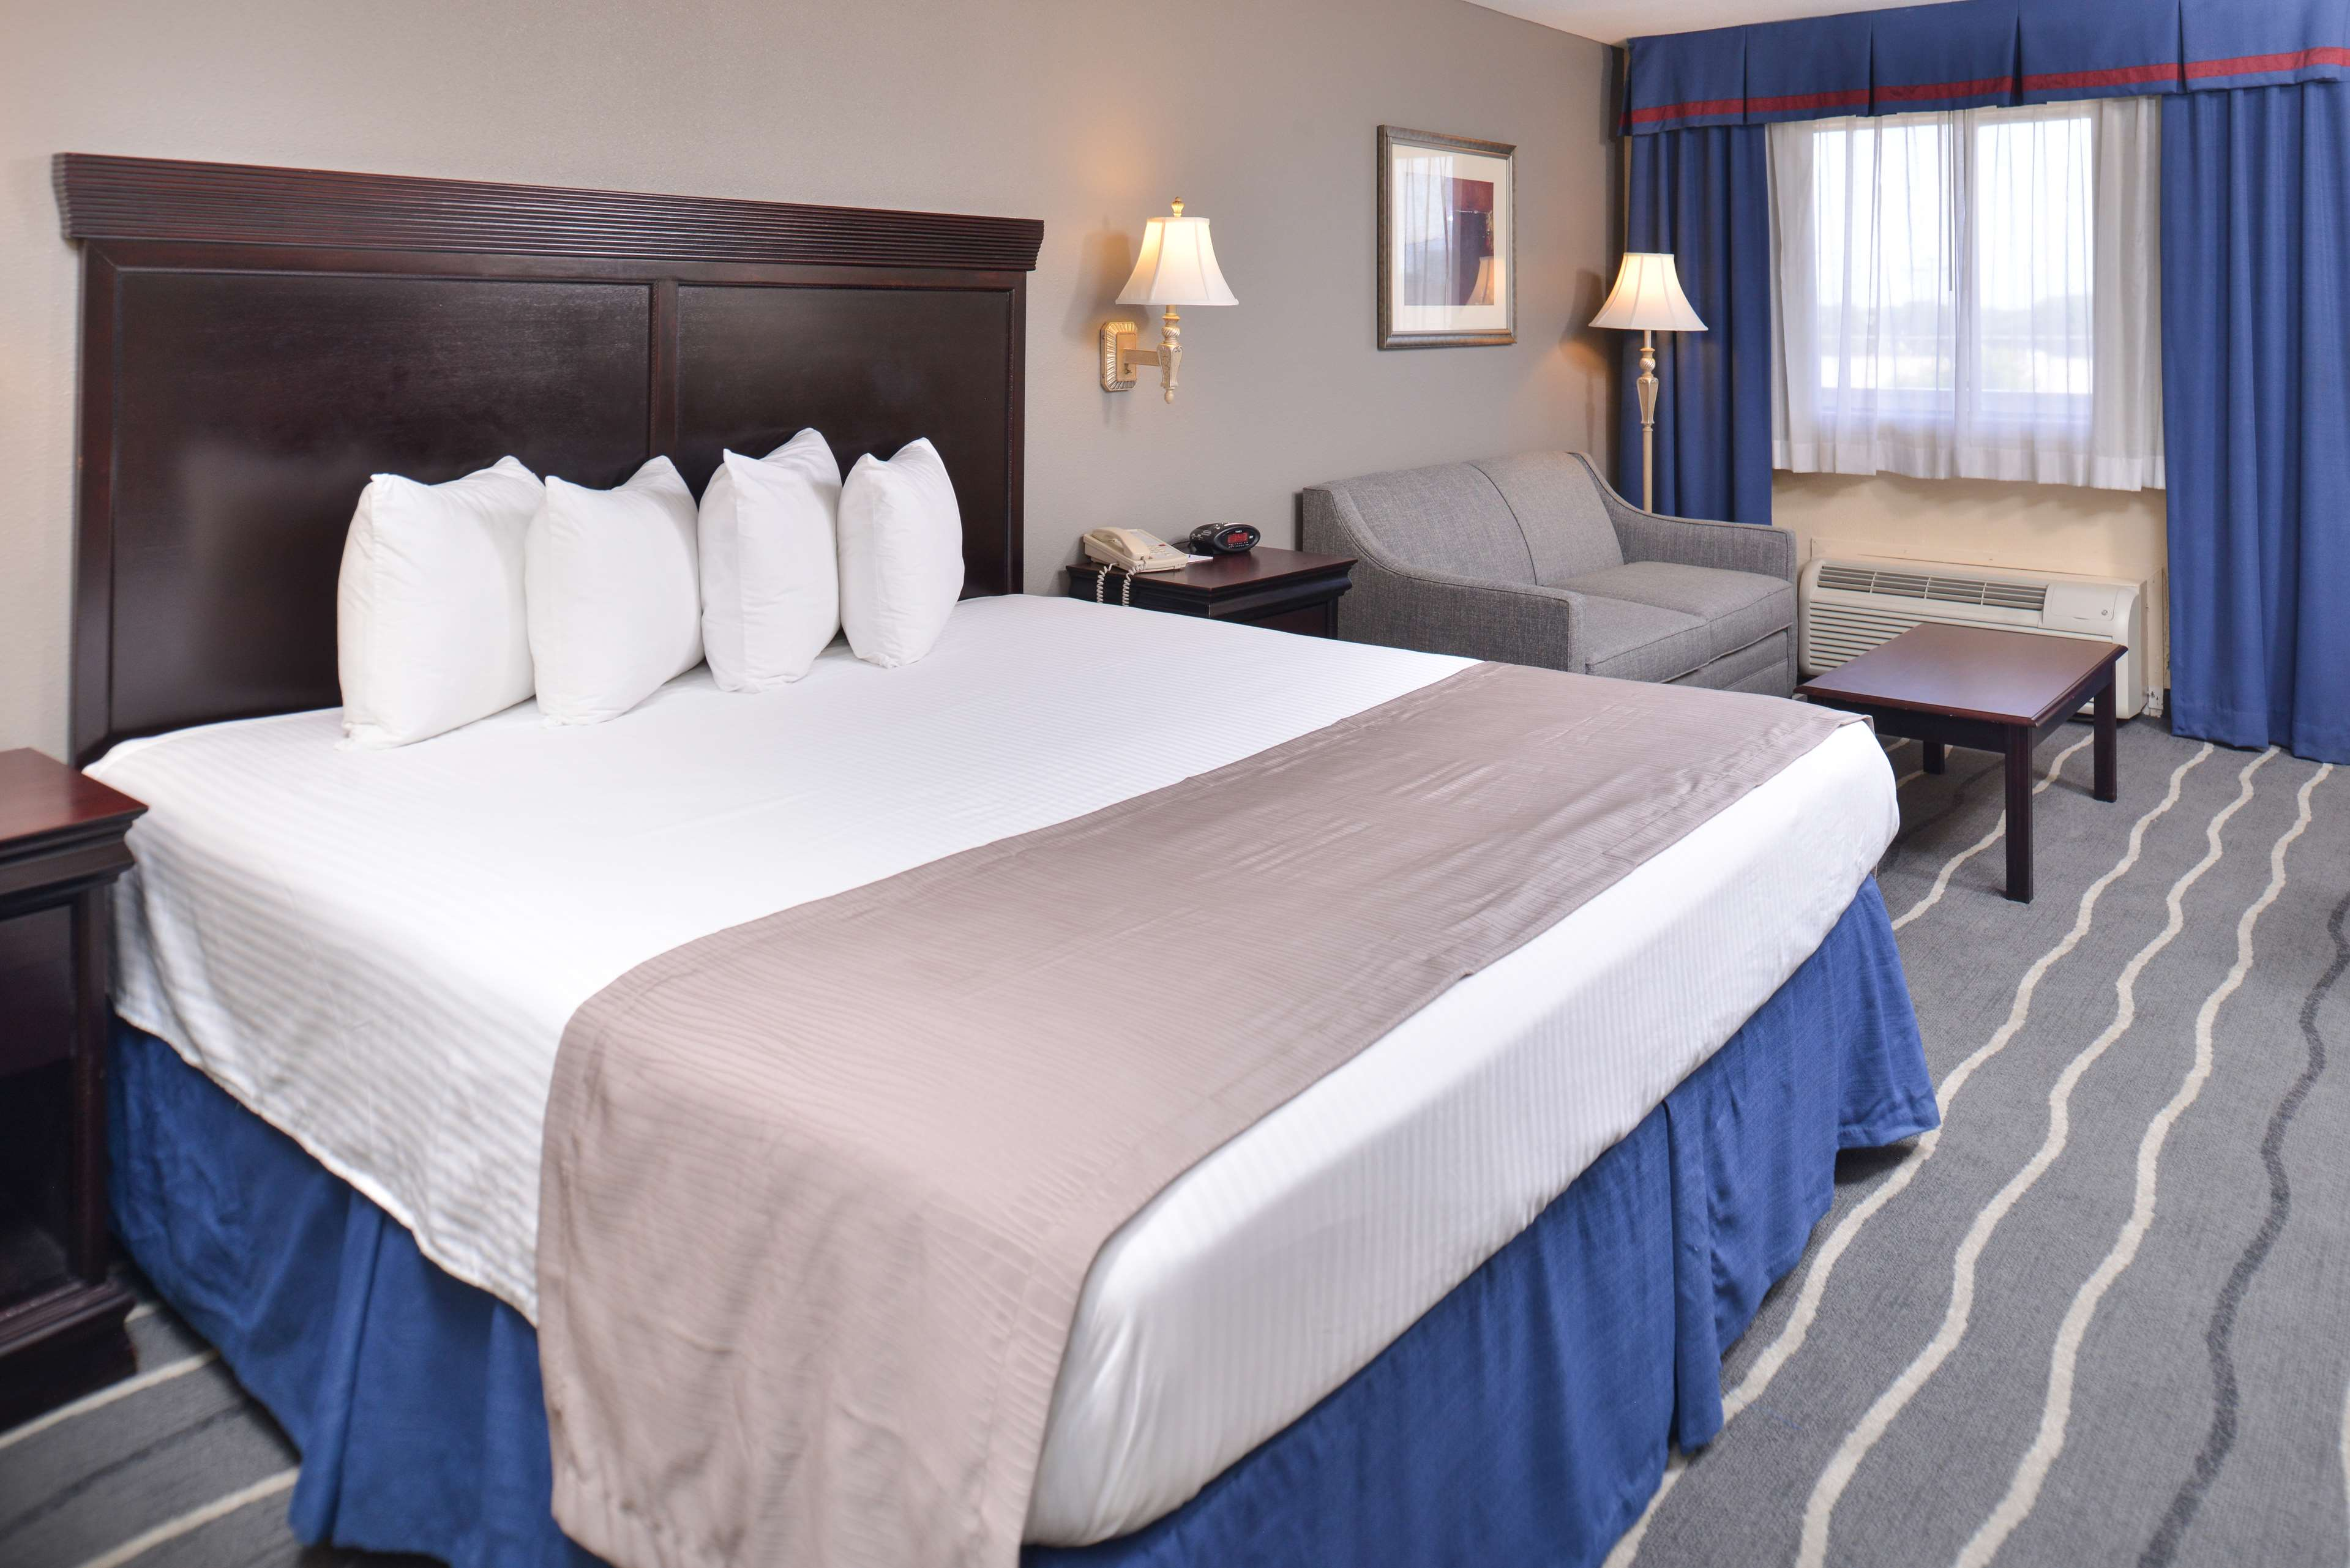 Best Western Irving Inn & Suites at DFW Airport image 19